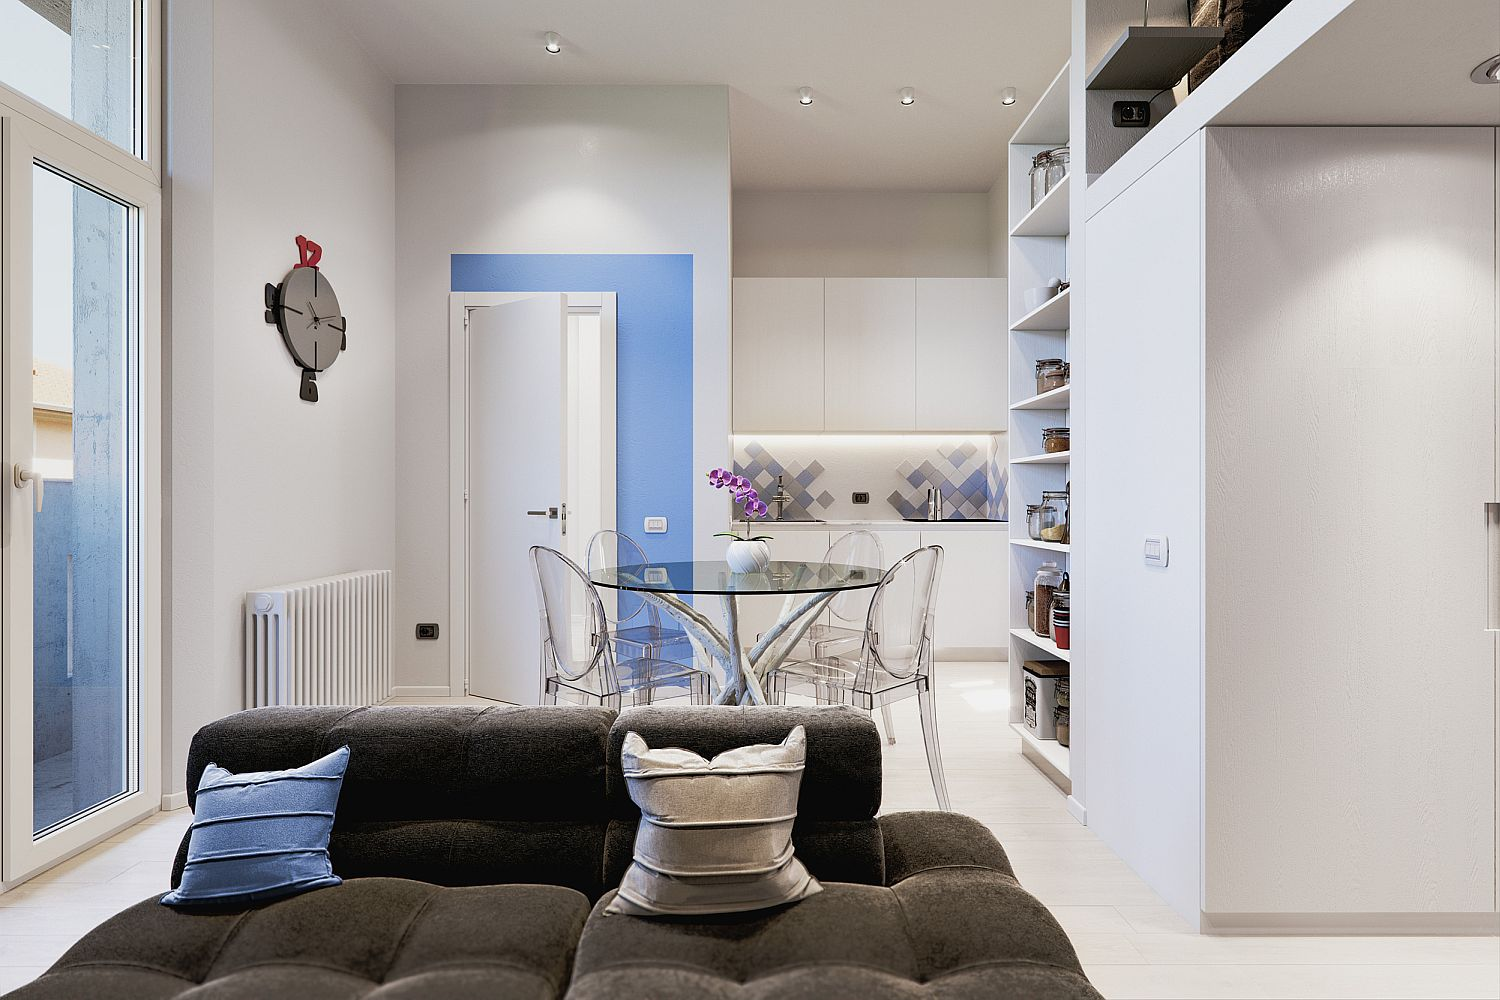 Just a dash of blue with accent wall feature and throw pillow adds color to the tiny interior